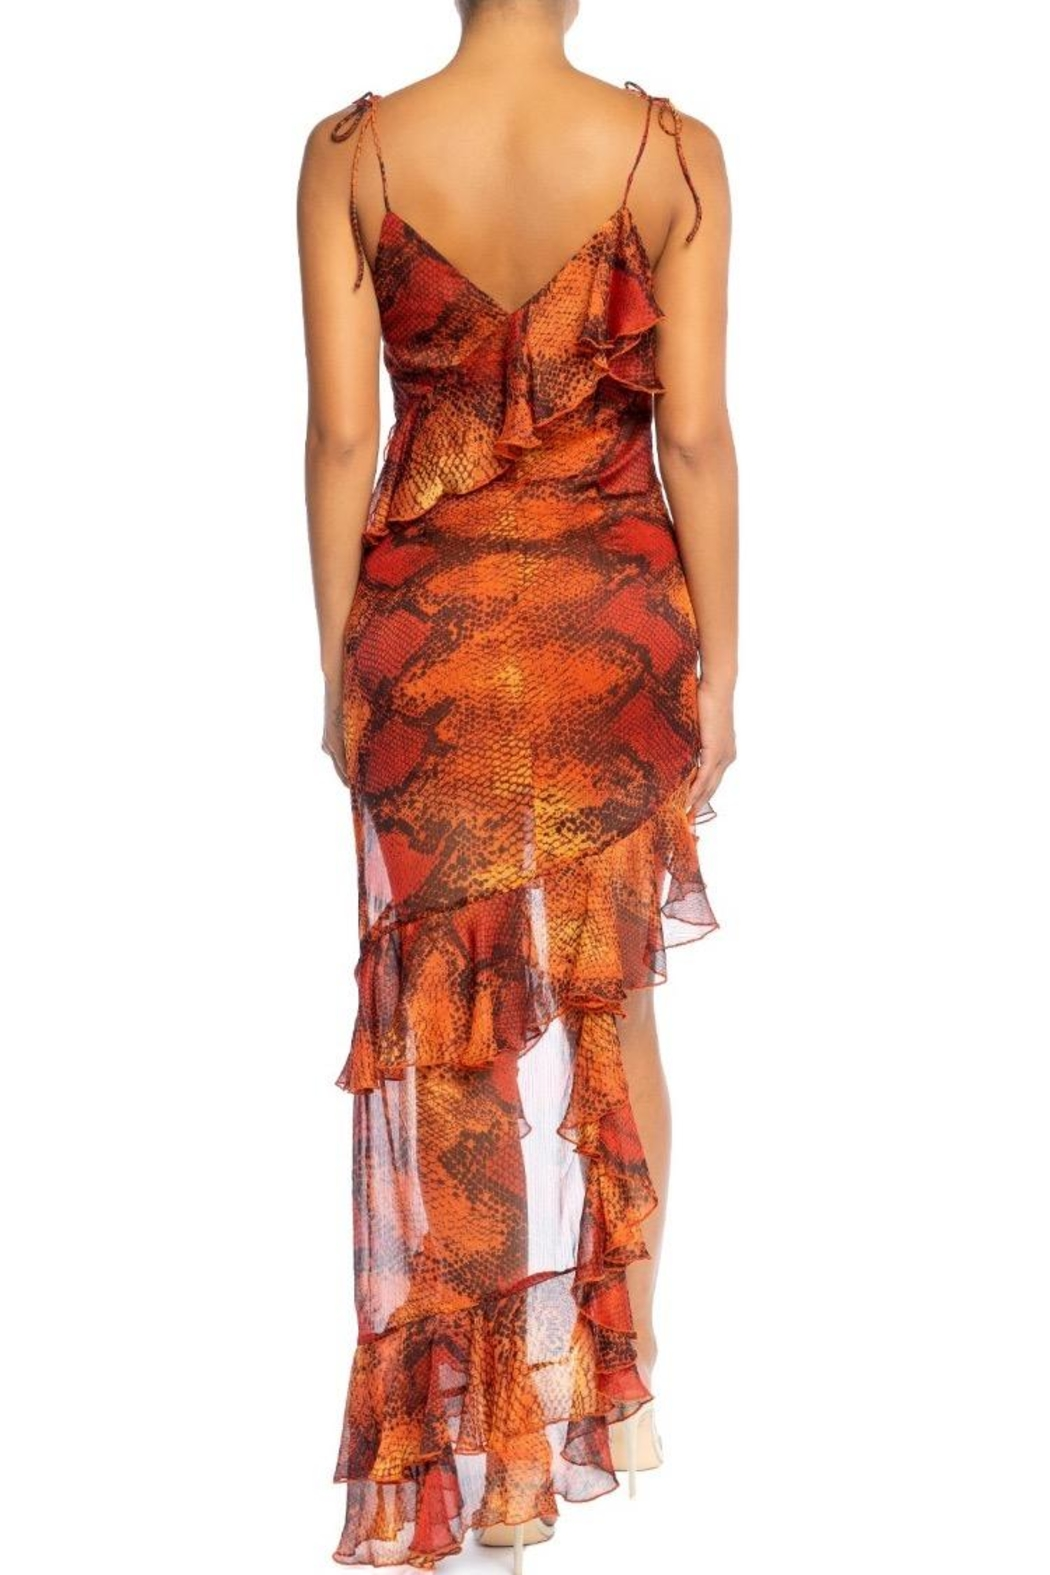 luxxel Snake-Skin Ruffle Maxi - Front Full Image